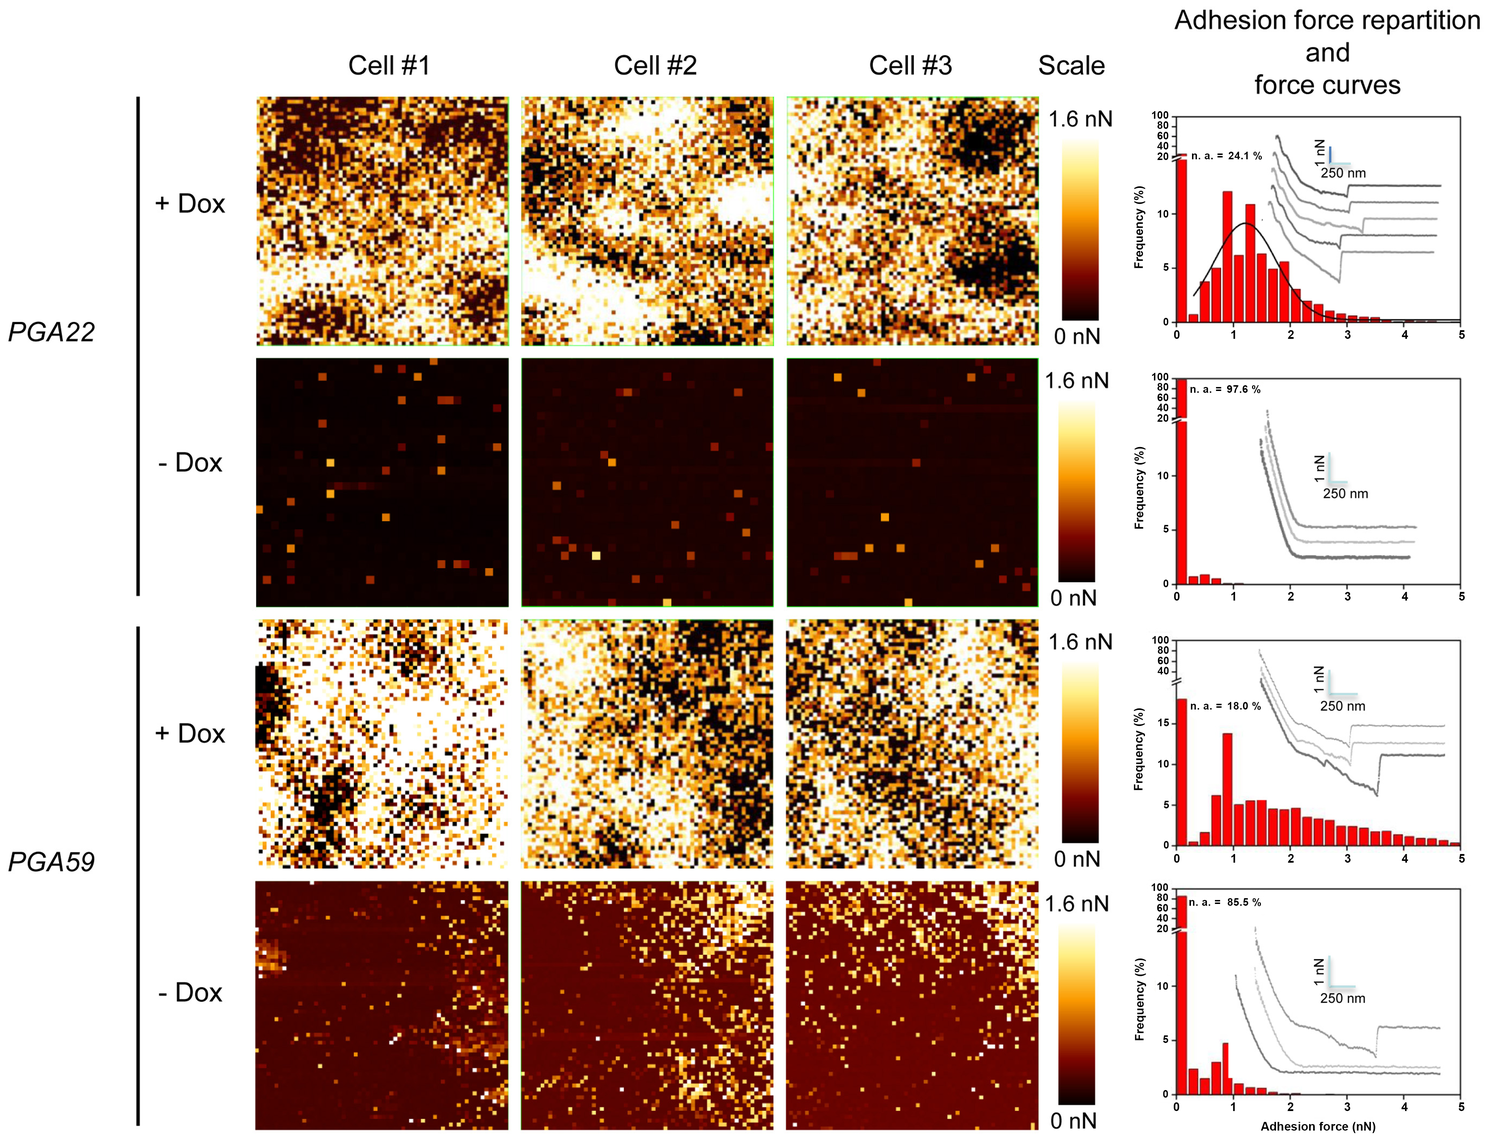 Atomic Force Microscopy-derived adhesion force measurements in single <i>C. albicans</i> cells overexpressing <i>PGA22</i> and <i>PGA59</i>.